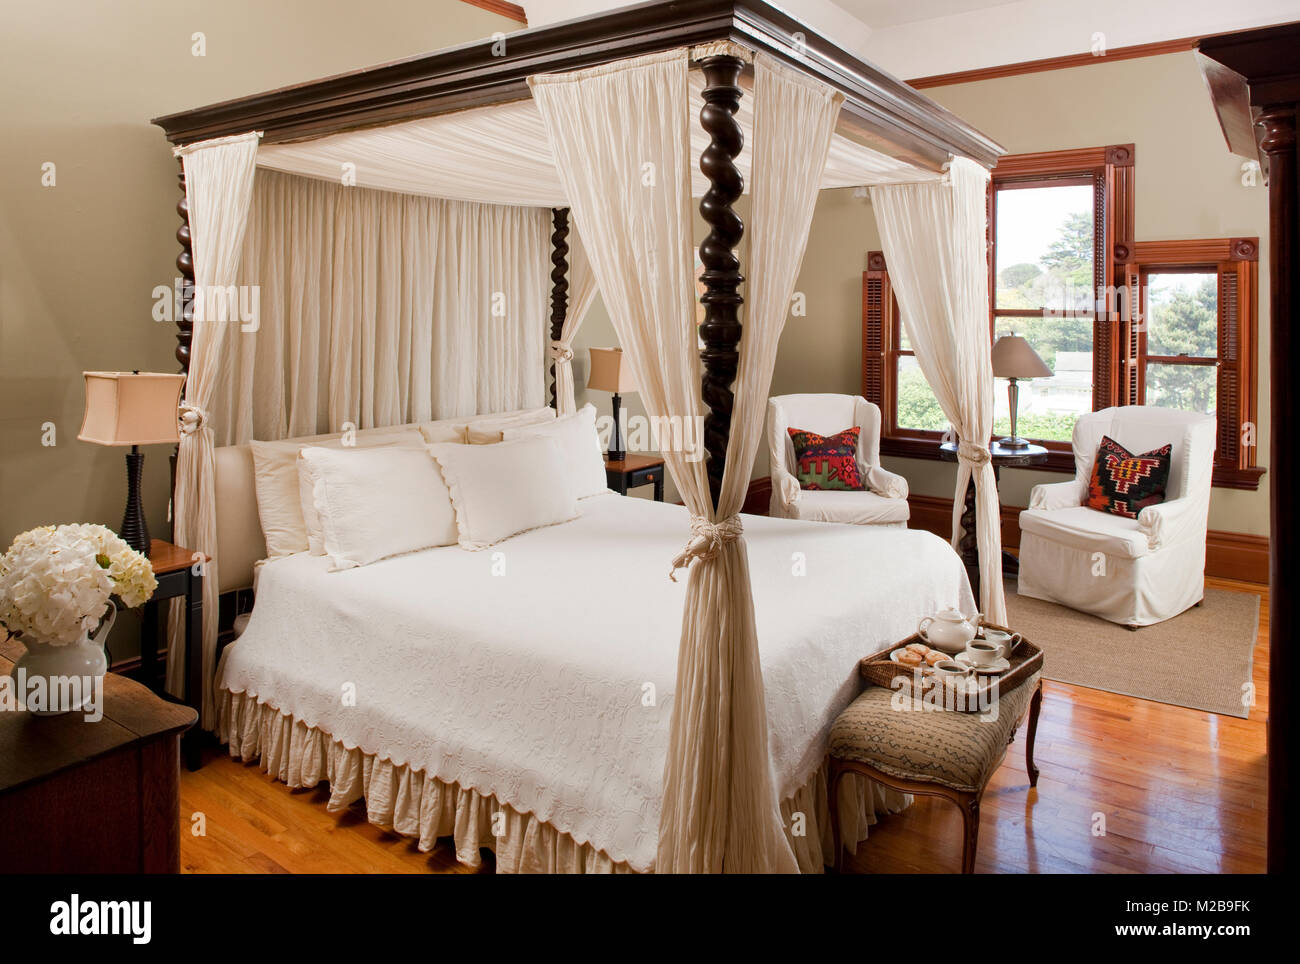 Four Poster Bed In Updated Victorian Carter House Stock Photo Alamy